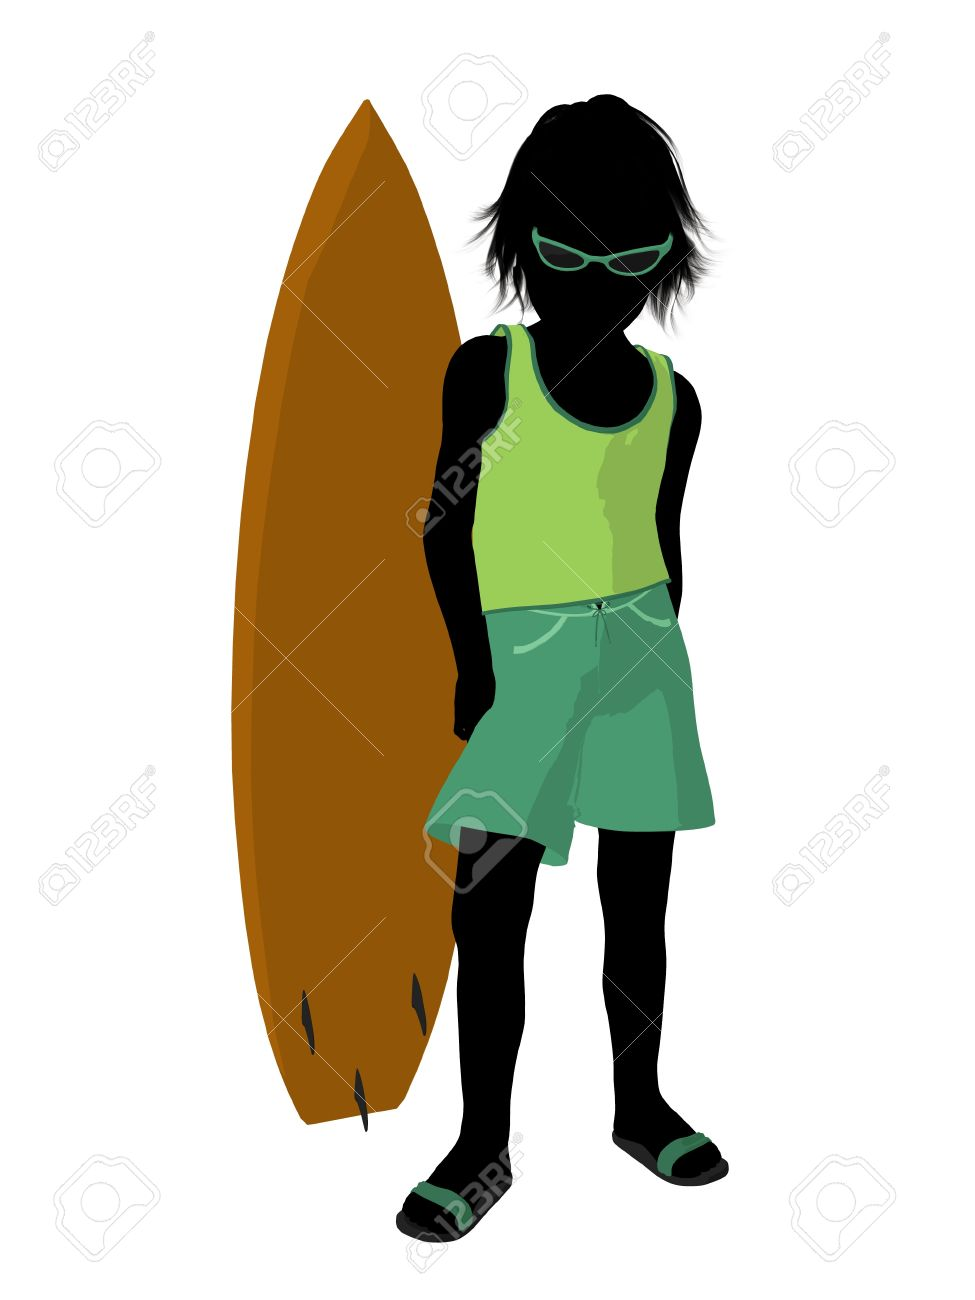 975x1300 Silhouette Boy Surfboard Clipart Collection